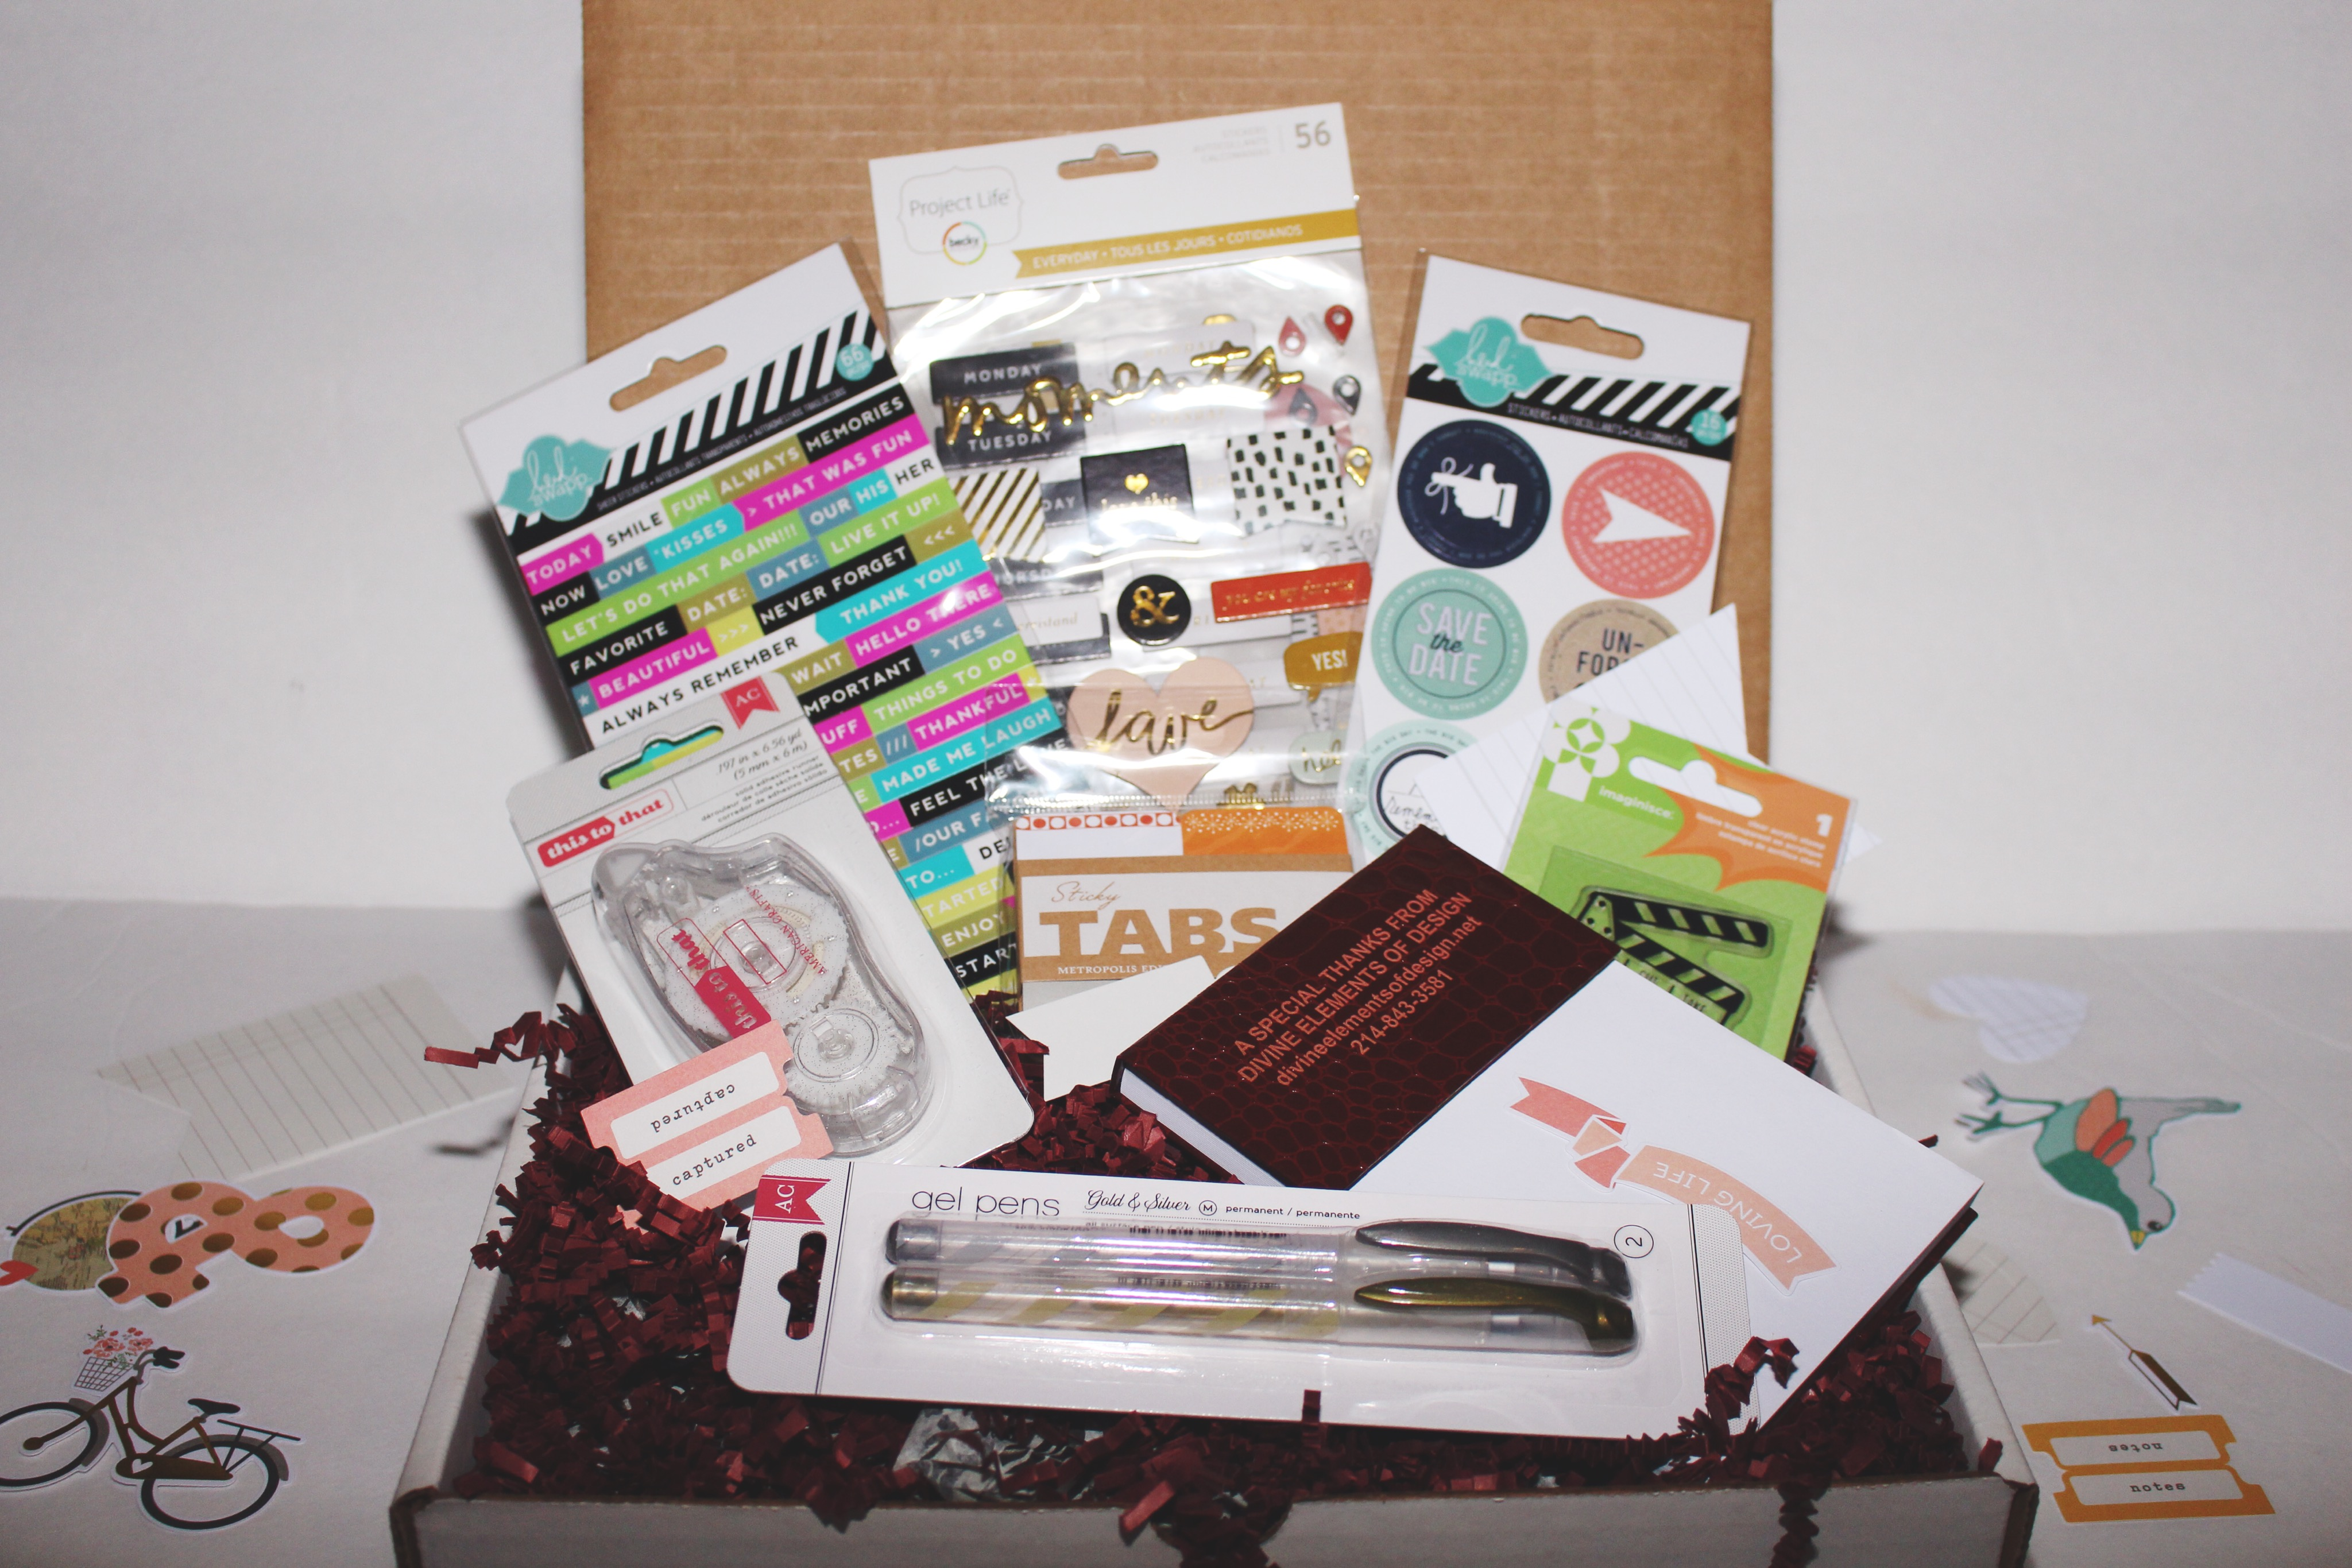 How to scrapbook materials - Contains Over 35 00 Worth Of Planner Supplies